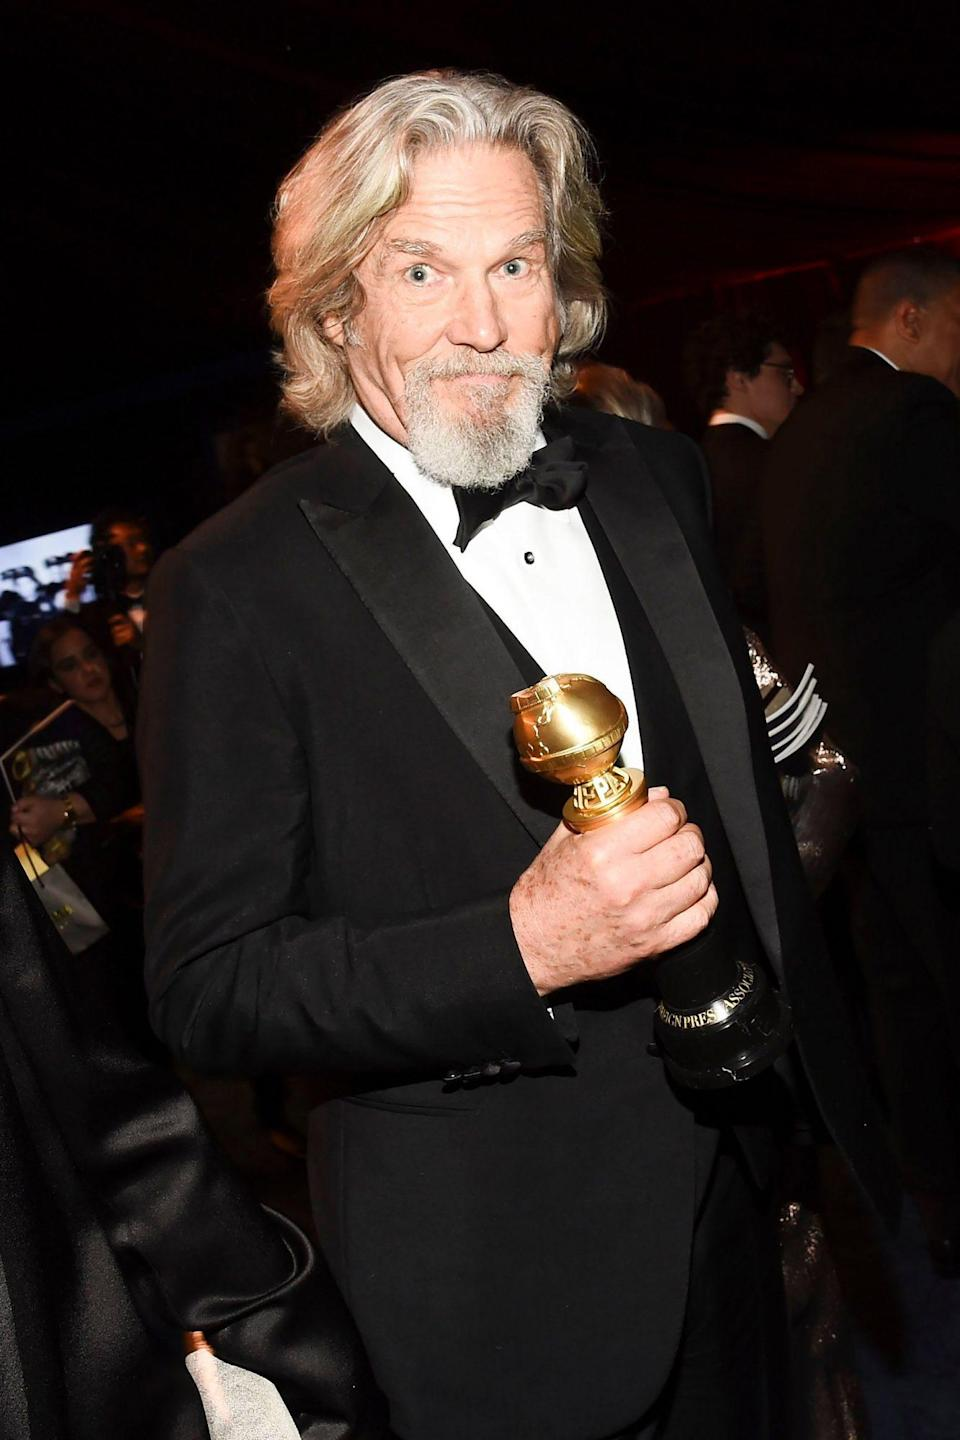 <p>When Jeff Bridges won the Cecil B DeMille Award in 2019, his wife, brother and sister were in the audience to cheer him on as he thanked past costars, his team and even his stand-in.</p>